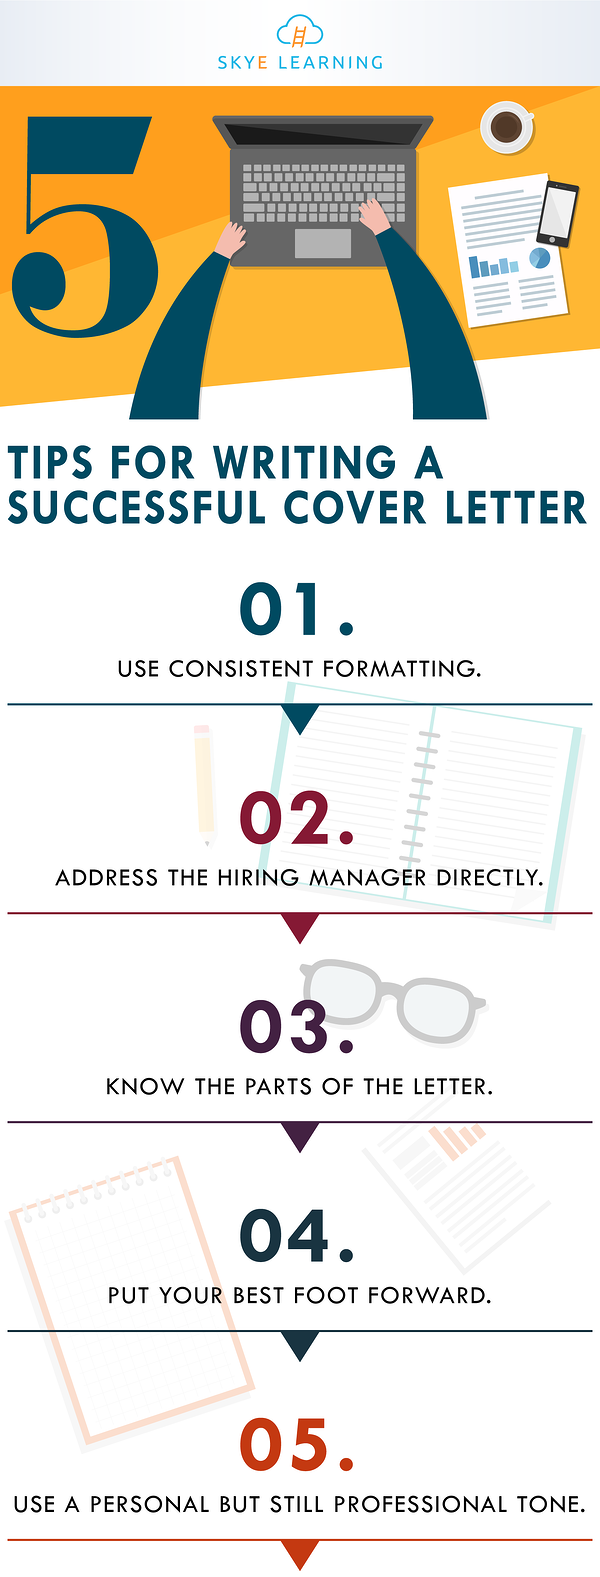 5-Tips-for-Writing-Cover-Letters-SL-IG-2019